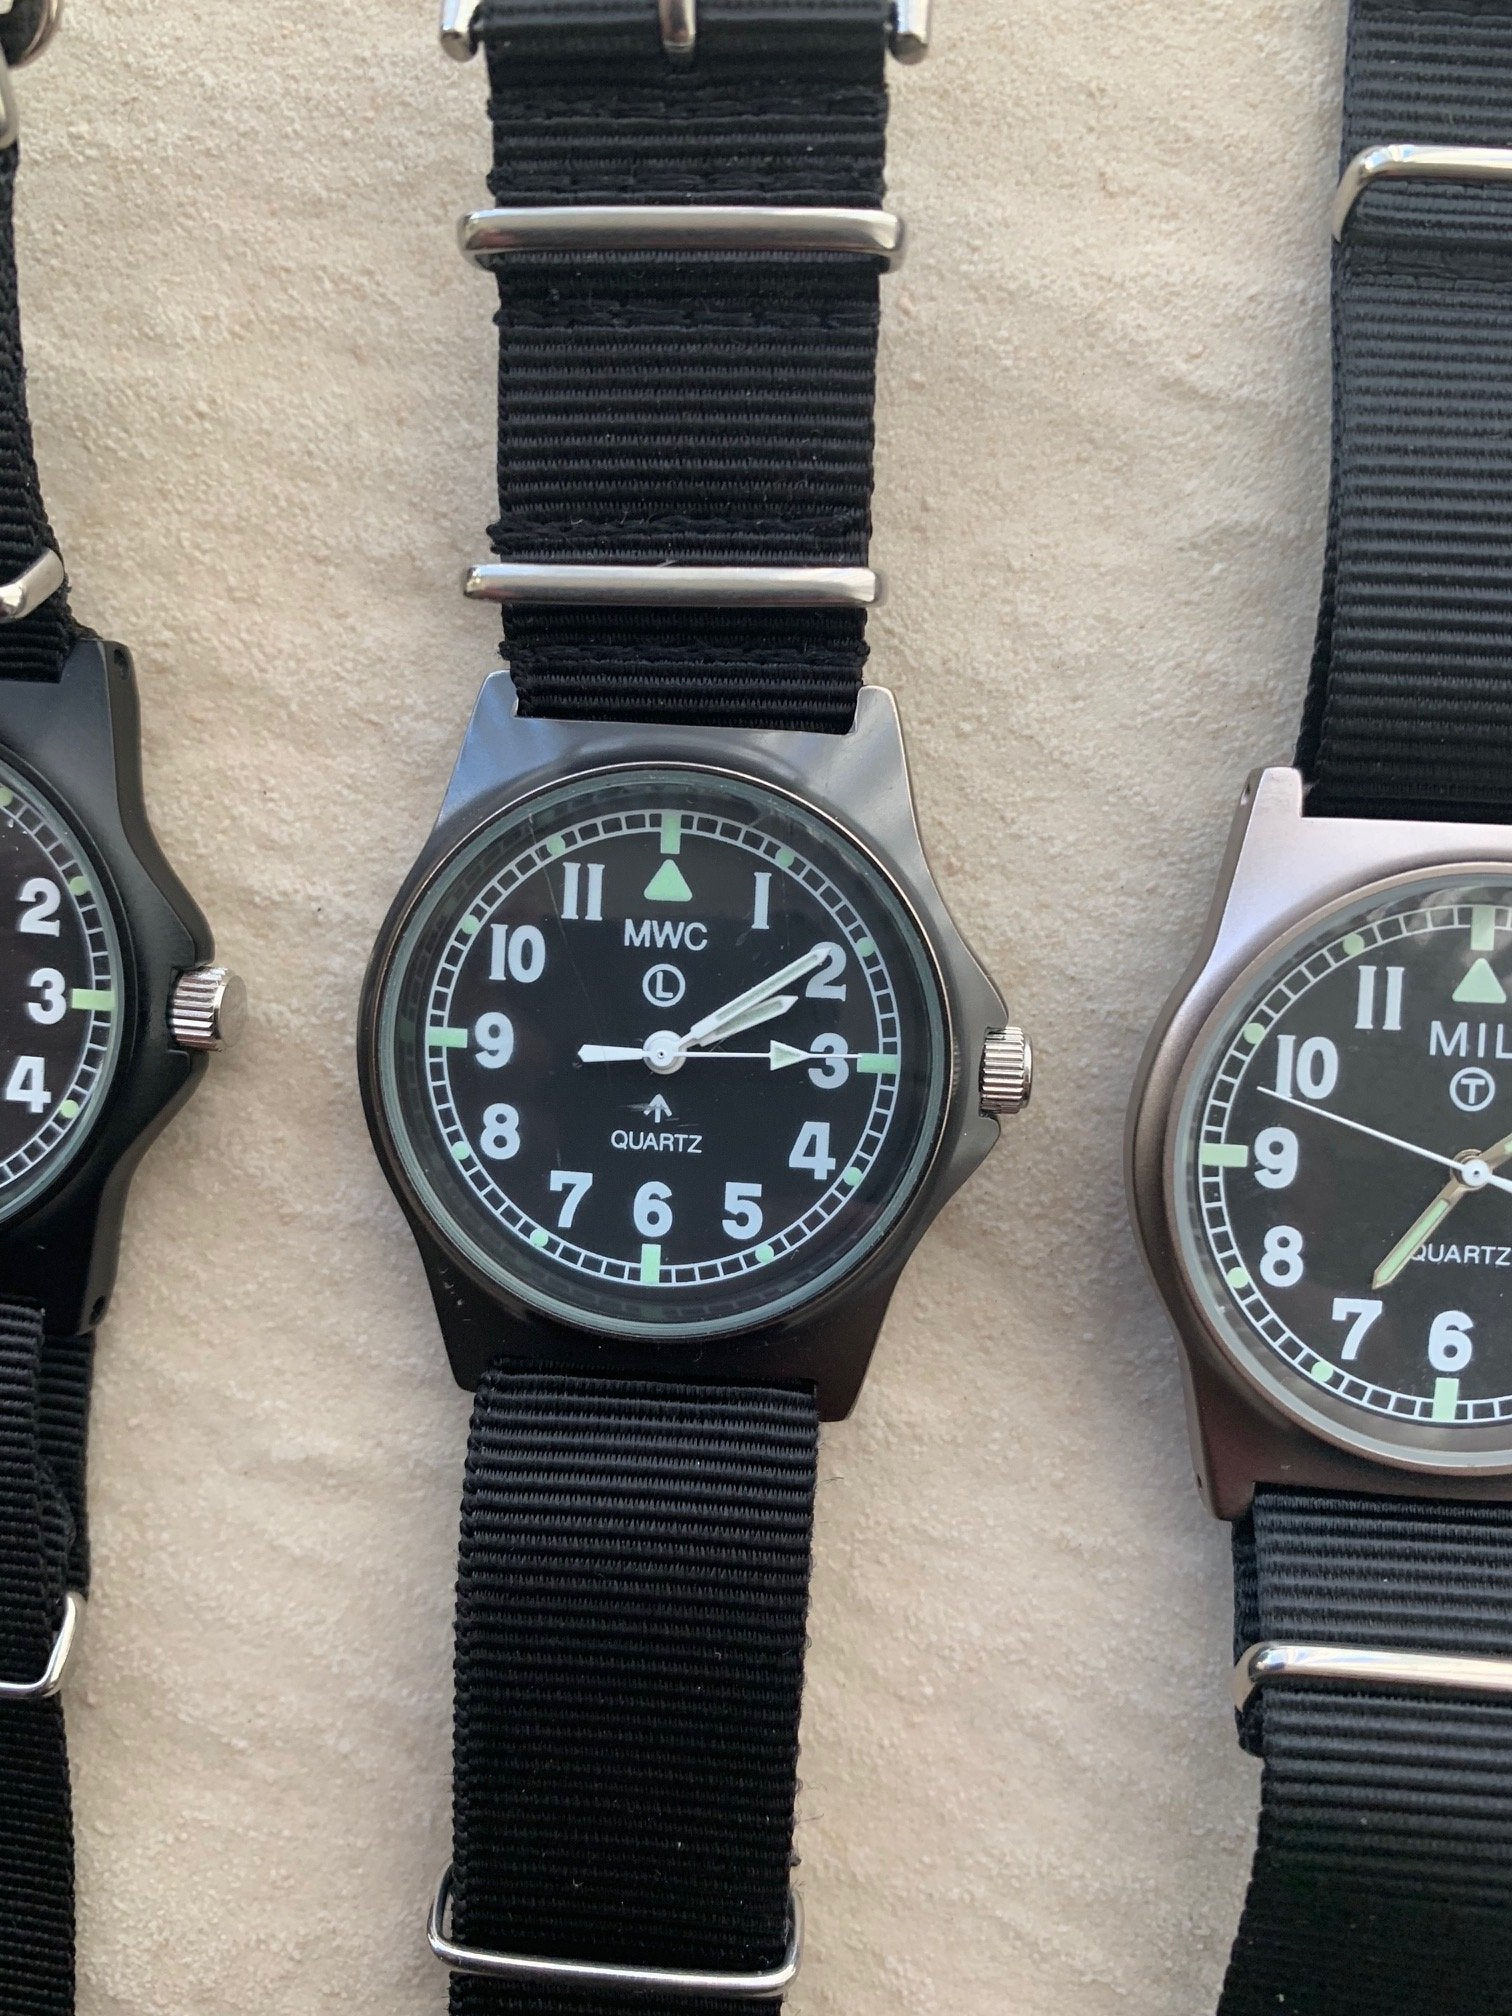 5 x Mixed G10 Watches of Various Brands (3 x MWC, 1 x CTC and 1 x MIL)